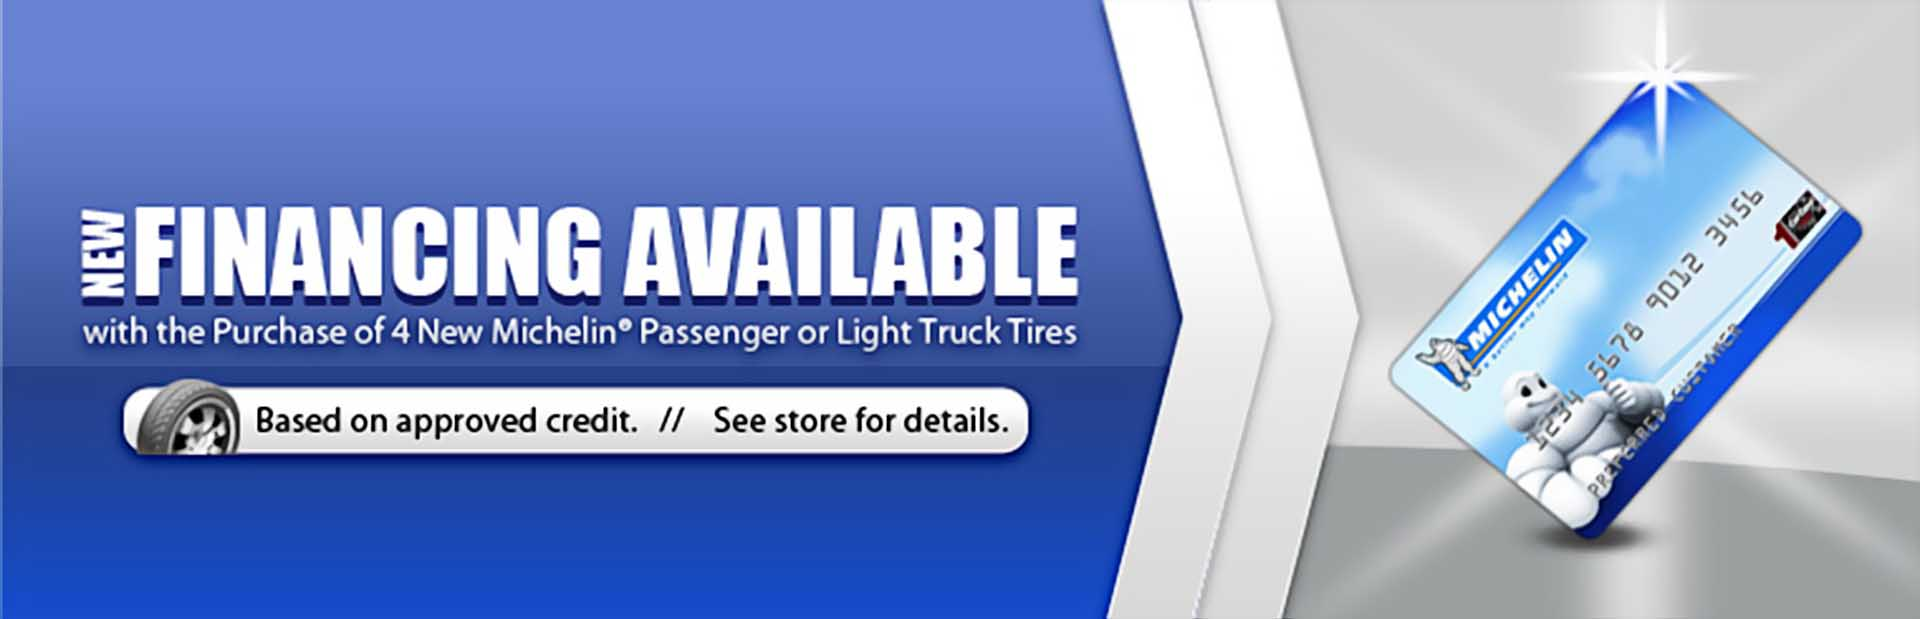 New financing is available with the purchase of 4 new Michelin® passenger or light truck tires!